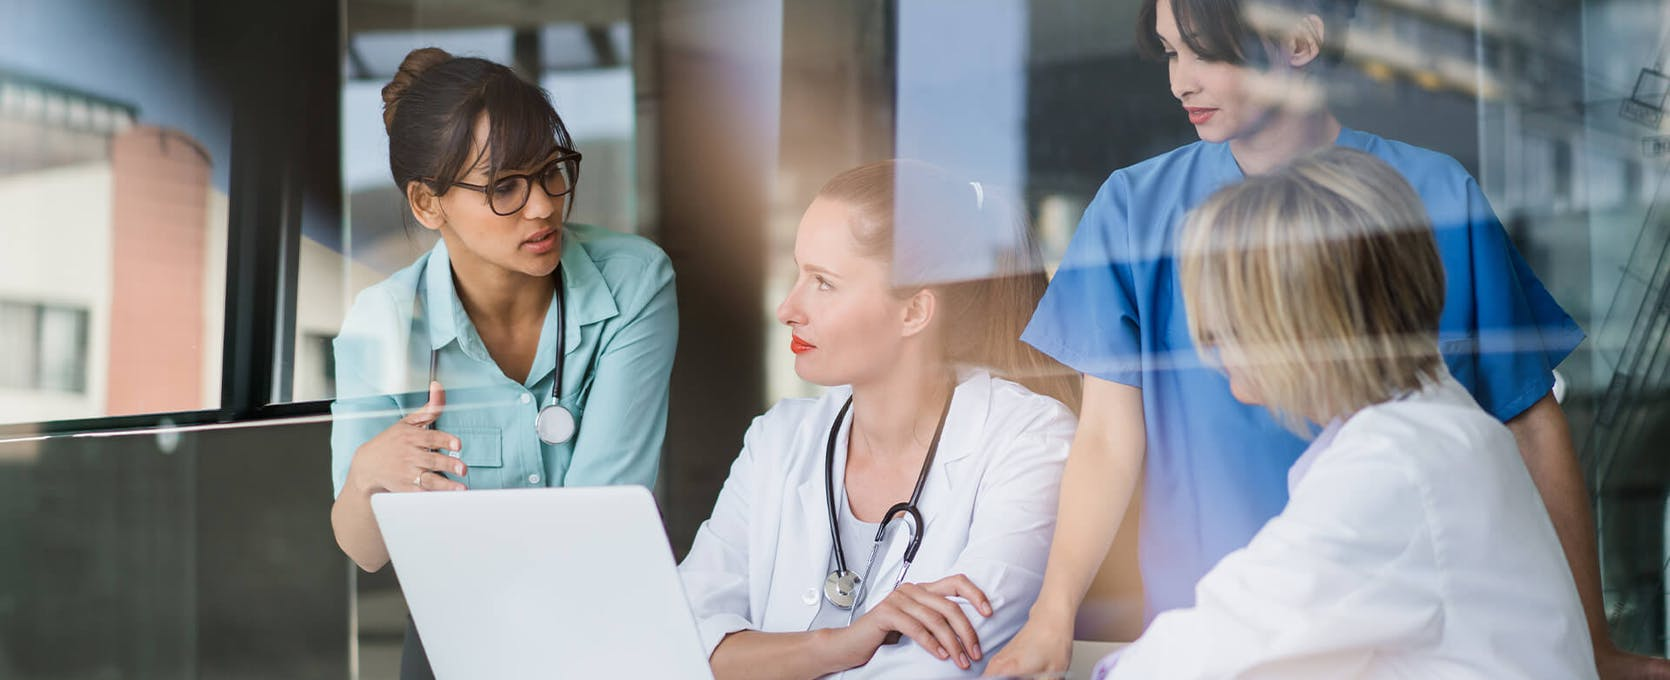 Female medical professionals meet to share healthcare information